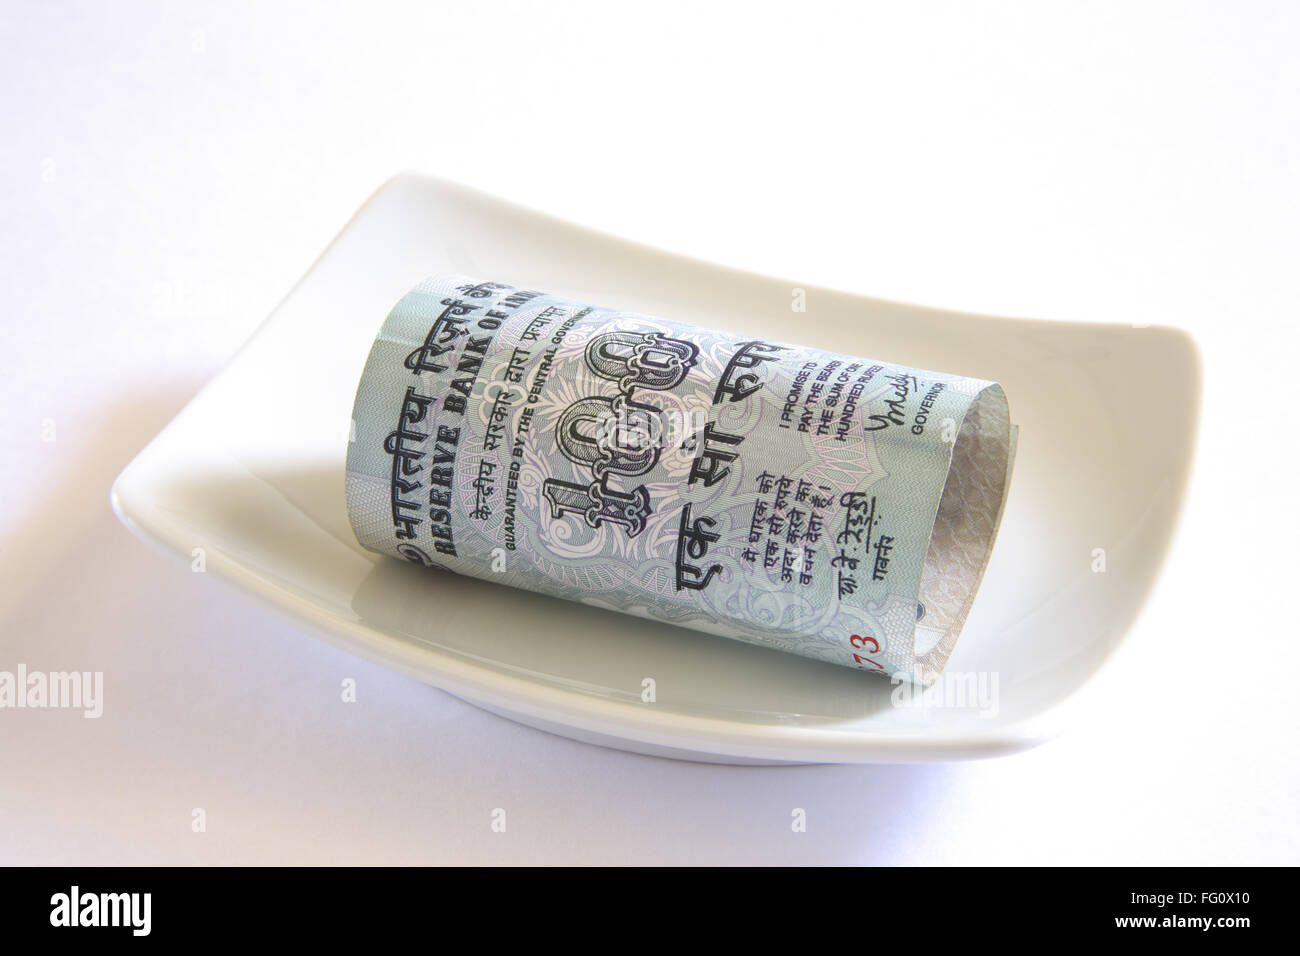 Concept , Indian currency one hundred rupees in plate - Stock Image